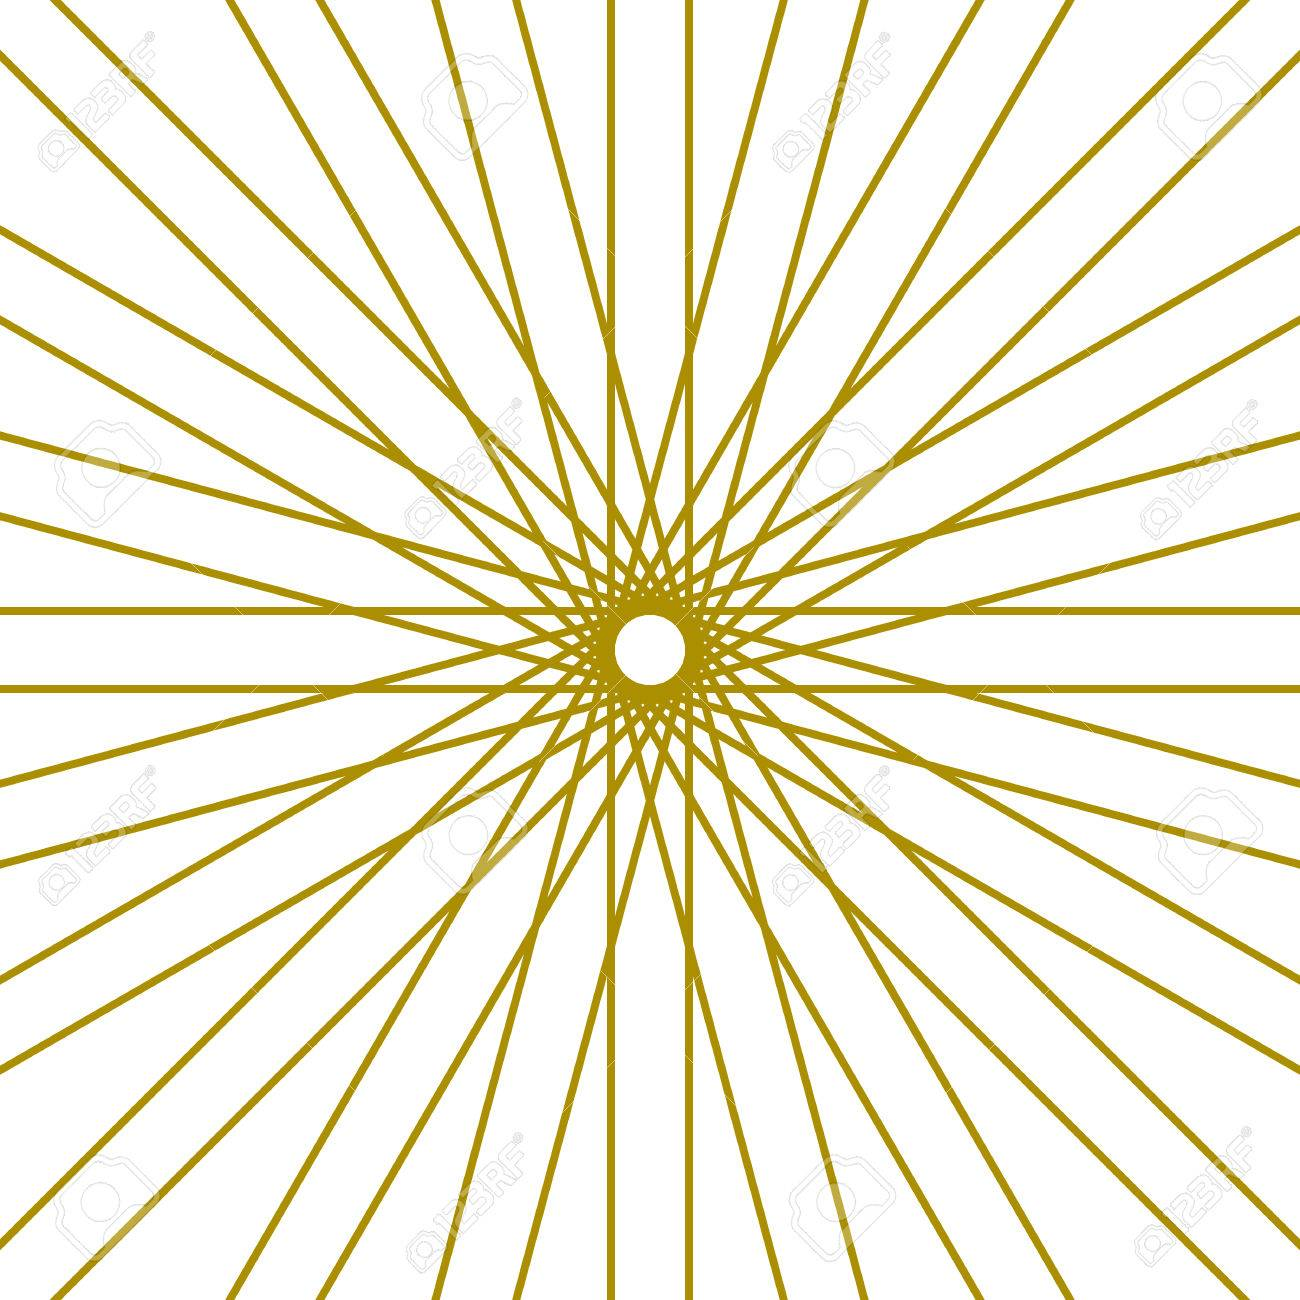 1300x1300 Rays Radiating From A Center. Linear Drawing Of Rays Of The Sun